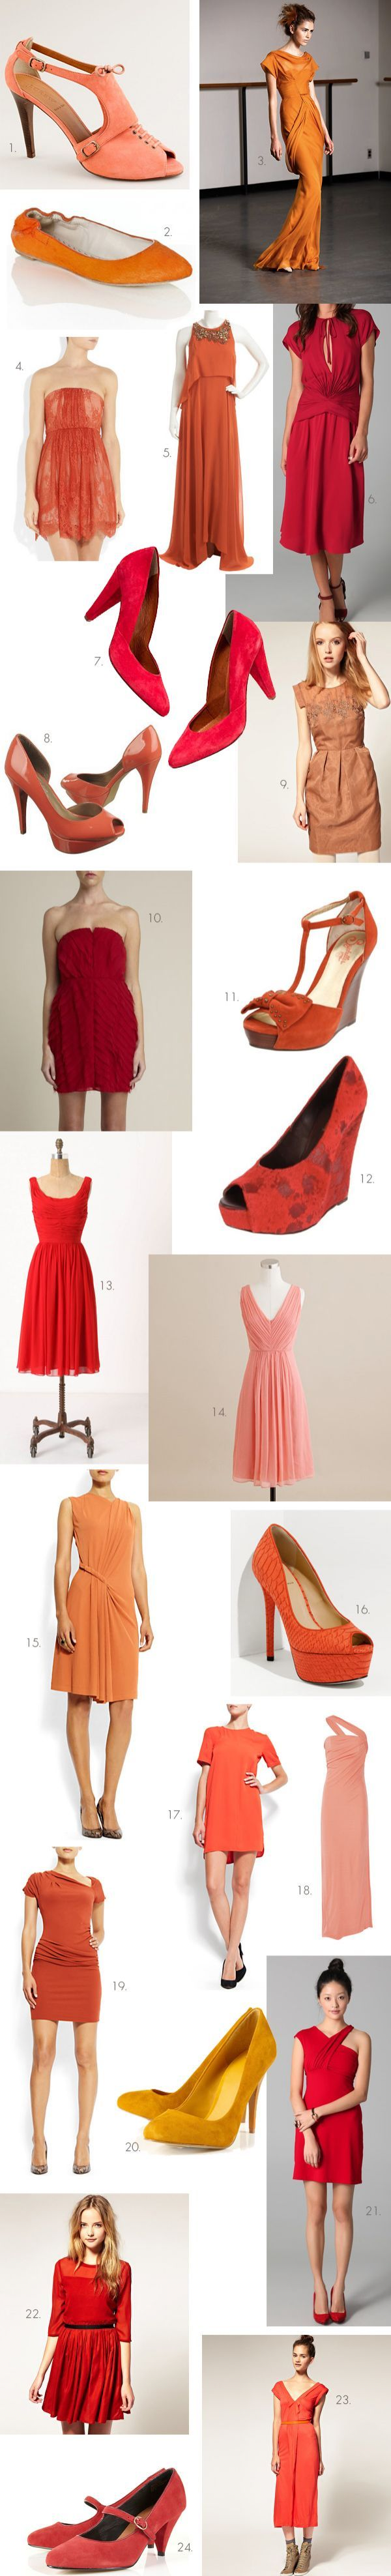 Red Orange Coral Bridesmaid Dresses Shoes